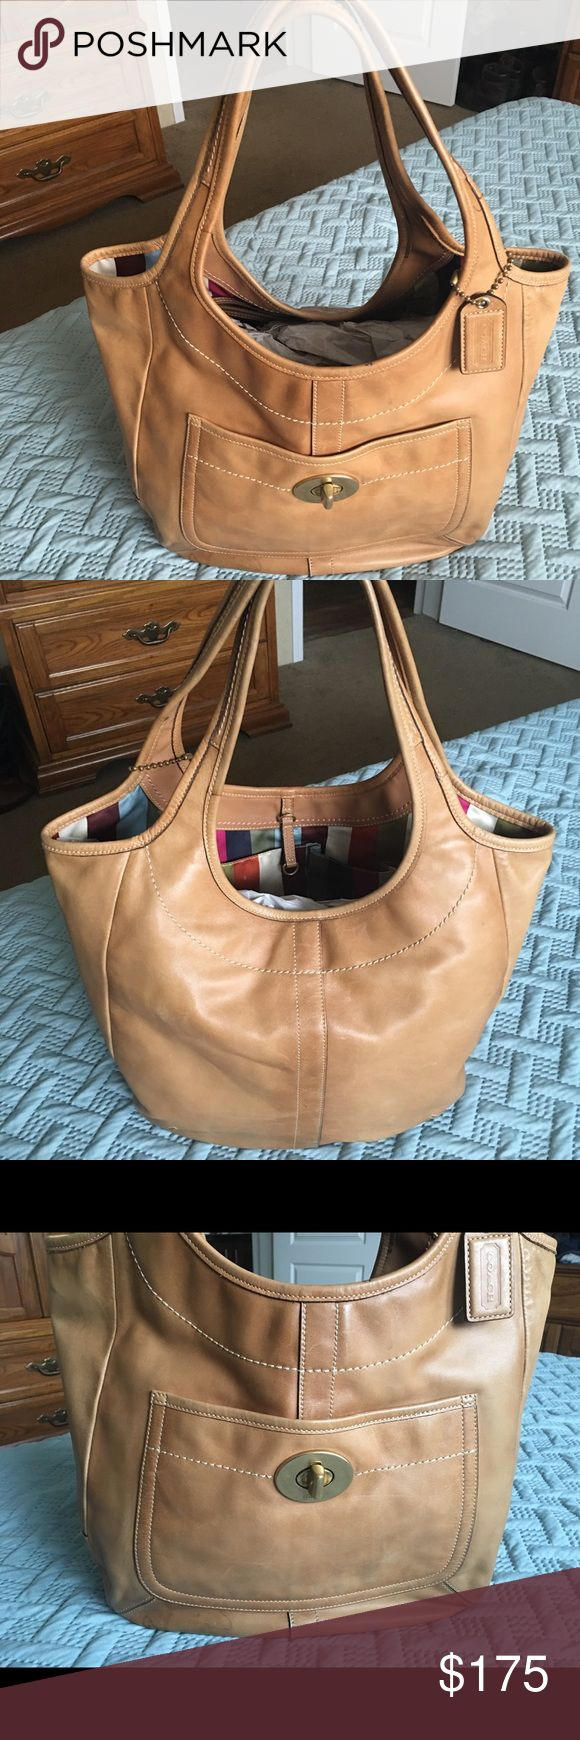 Authentic Coach Handbag Beautiful Legacy Leather Handbag. Smoke free home. Bag is used and shows wear. I took it by a local dry cleaner and was told it could be sent to a leather cleaning place and look good as new. It has no odors. Please look at all pics. Coach Bags Shoulder Bags